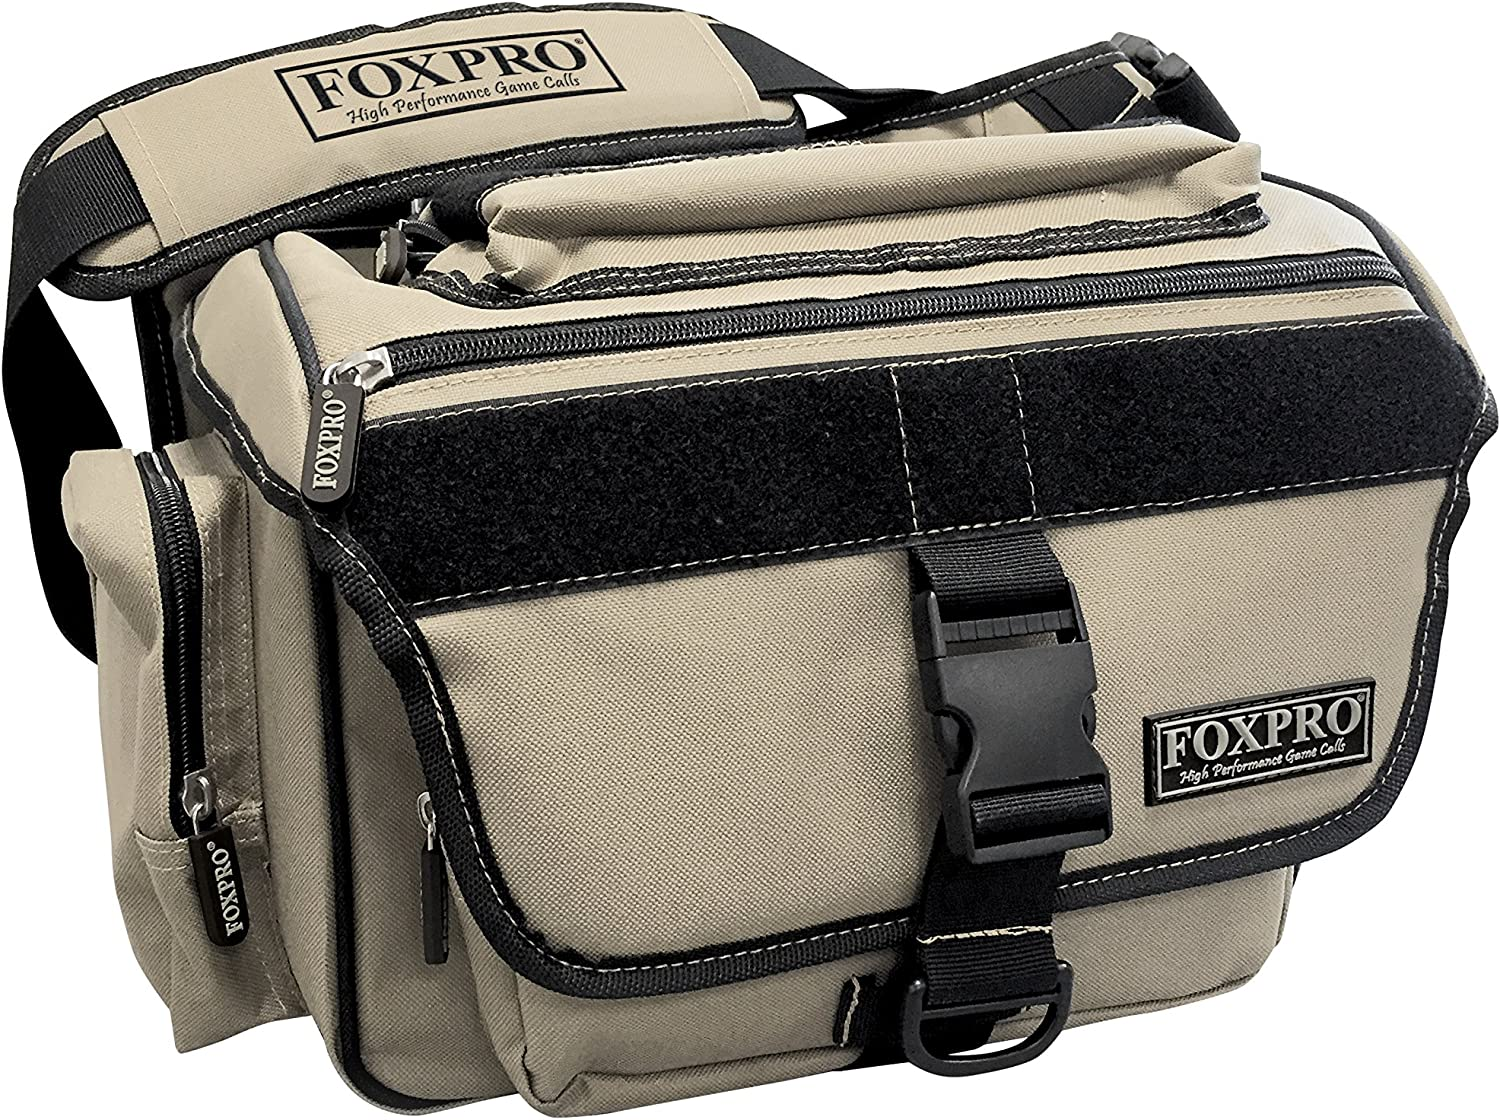 FOXPRO Large Tan Carry Case